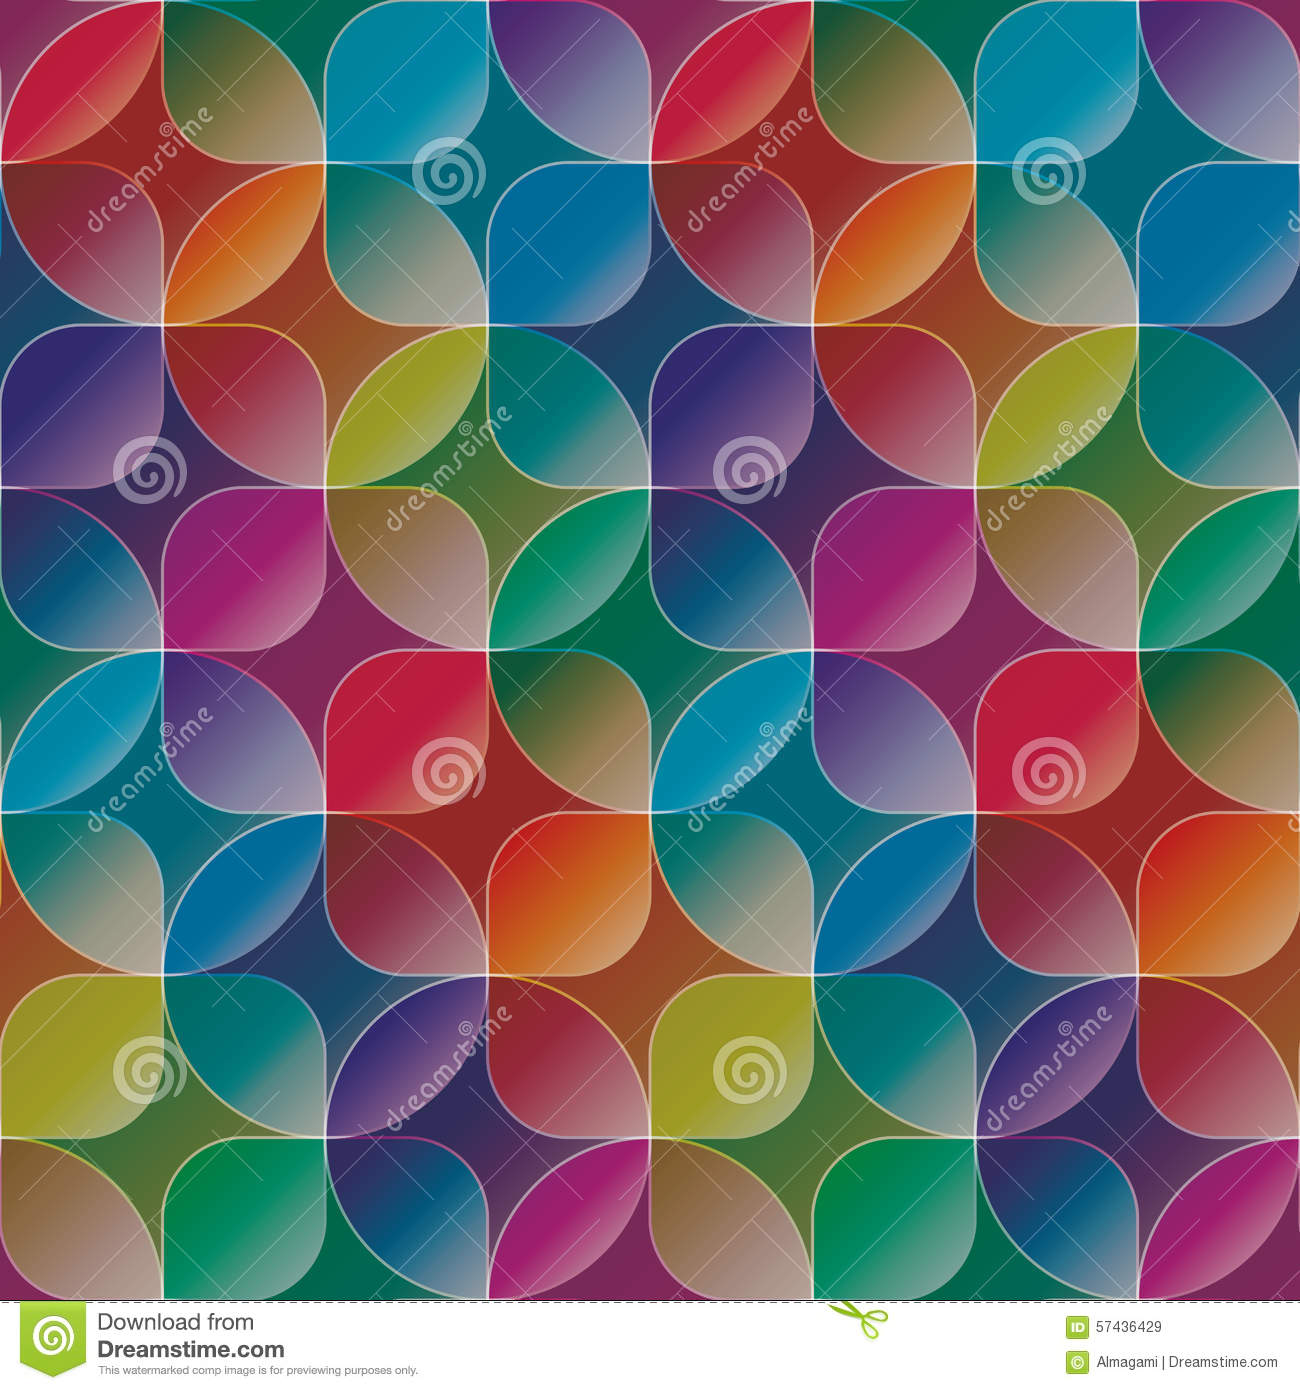 Overlap And Transparent Circles And Squares Colorful